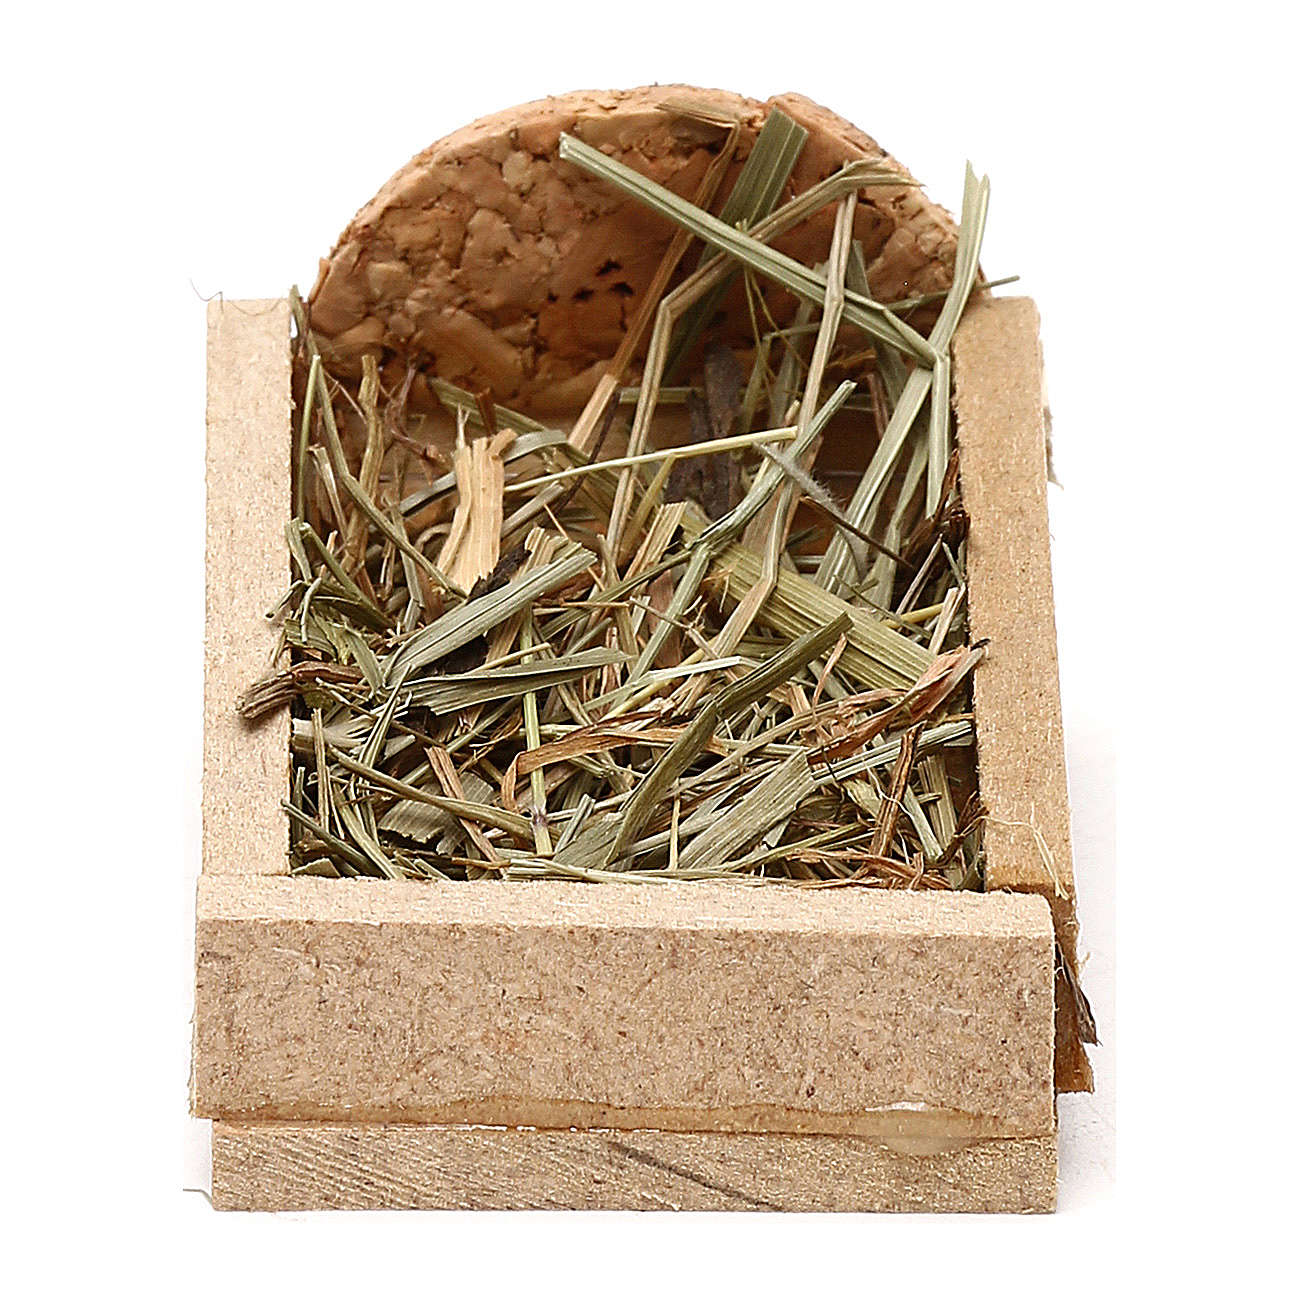 Cradle made of wood and straw for Nativity Scene 5 cm 3